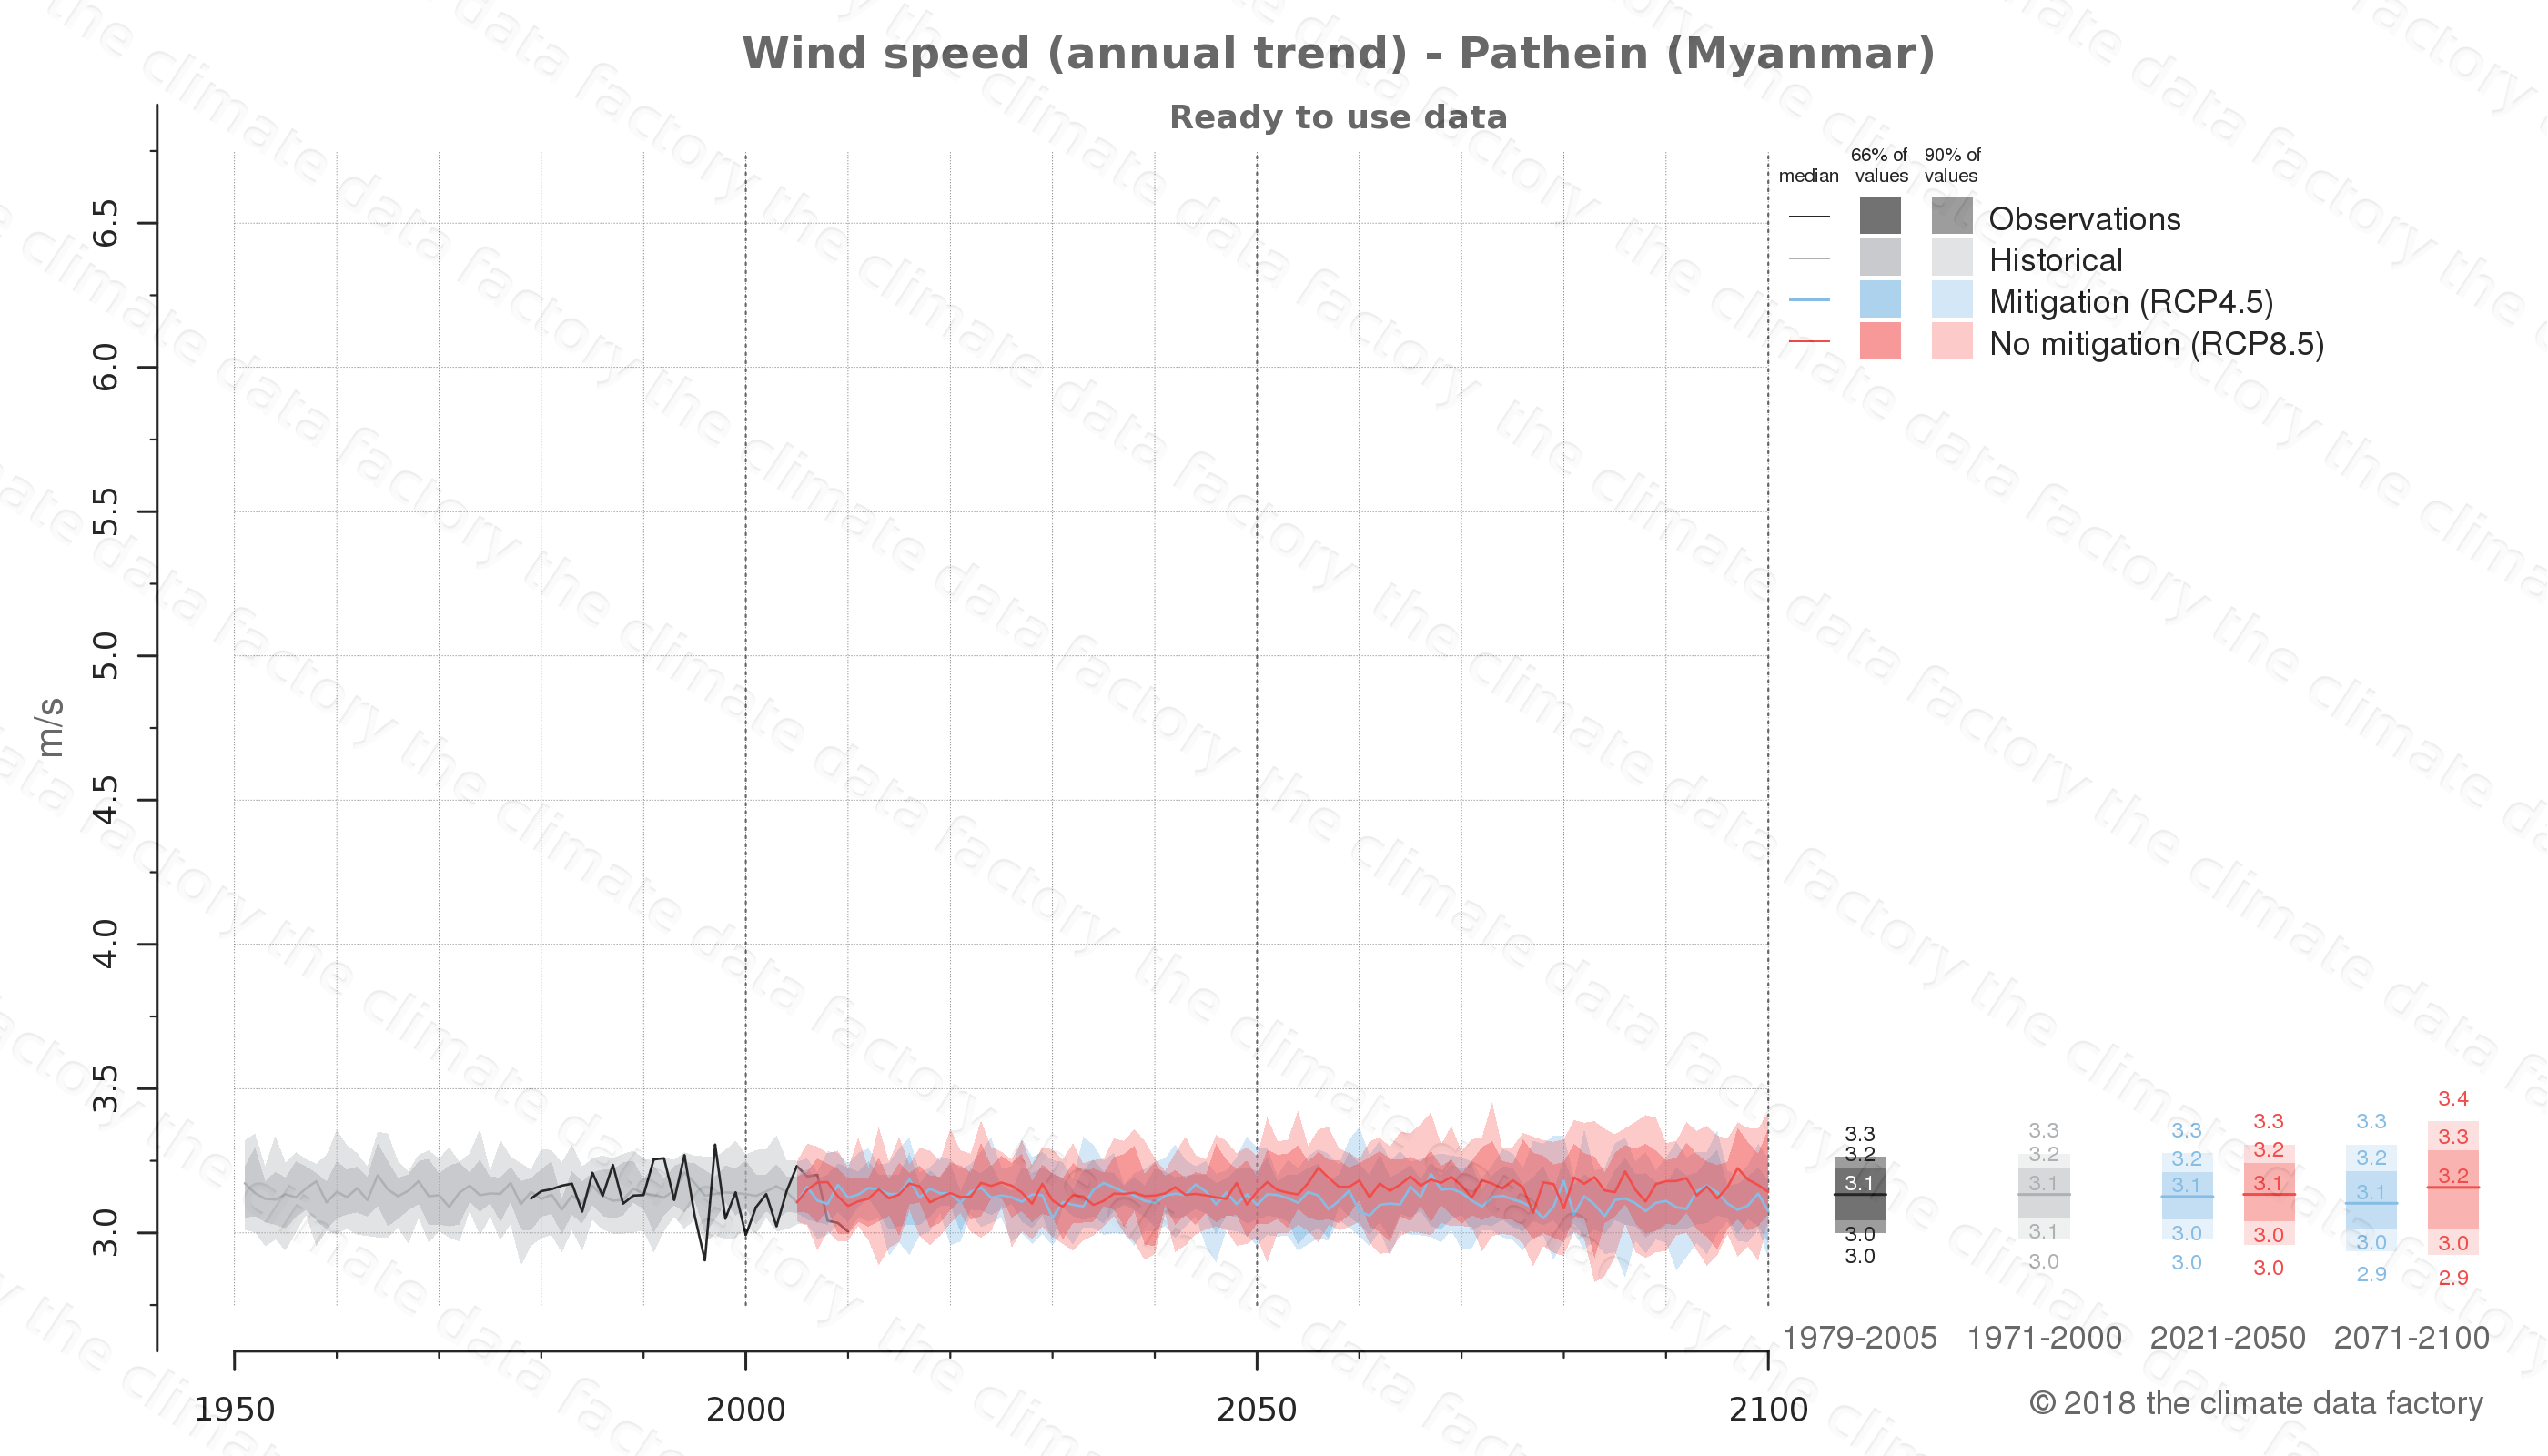 climate change data policy adaptation climate graph city data wind-speed pathein myanmar